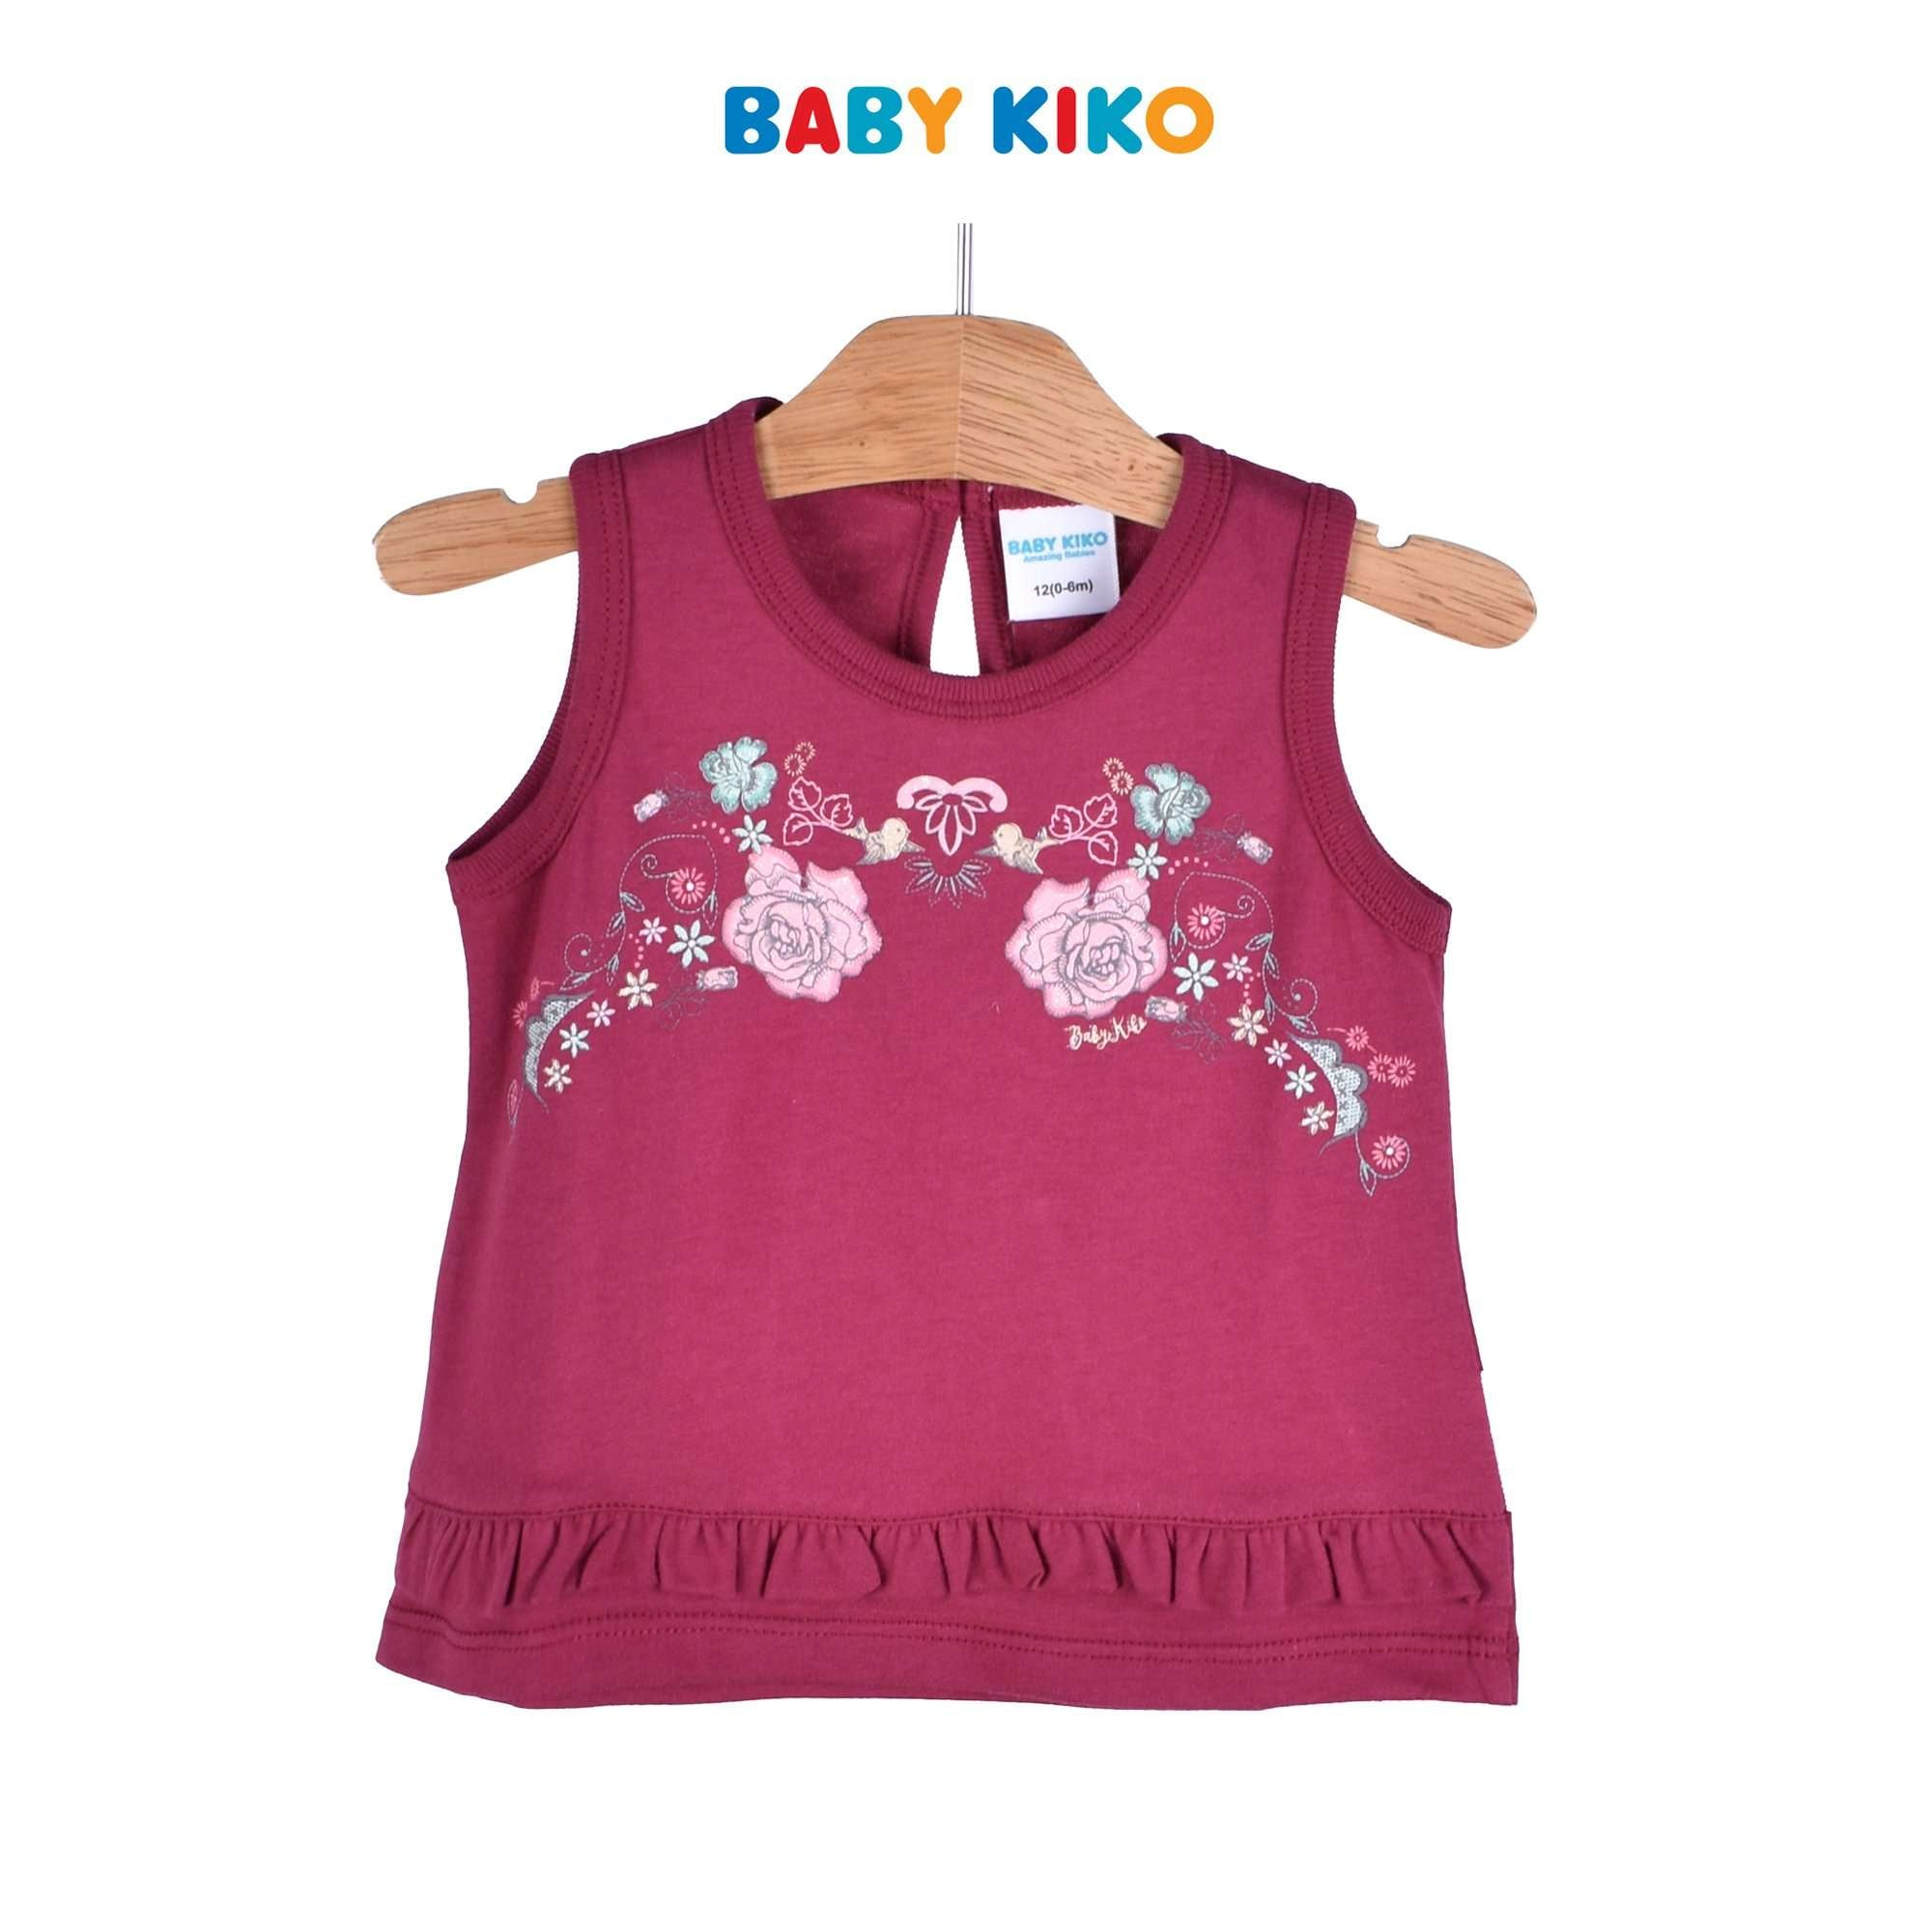 Baby KIKO Baby Girl Sleeveless Tee - Maroon 330053-101 : Buy Baby KIKO online at CMG.MY